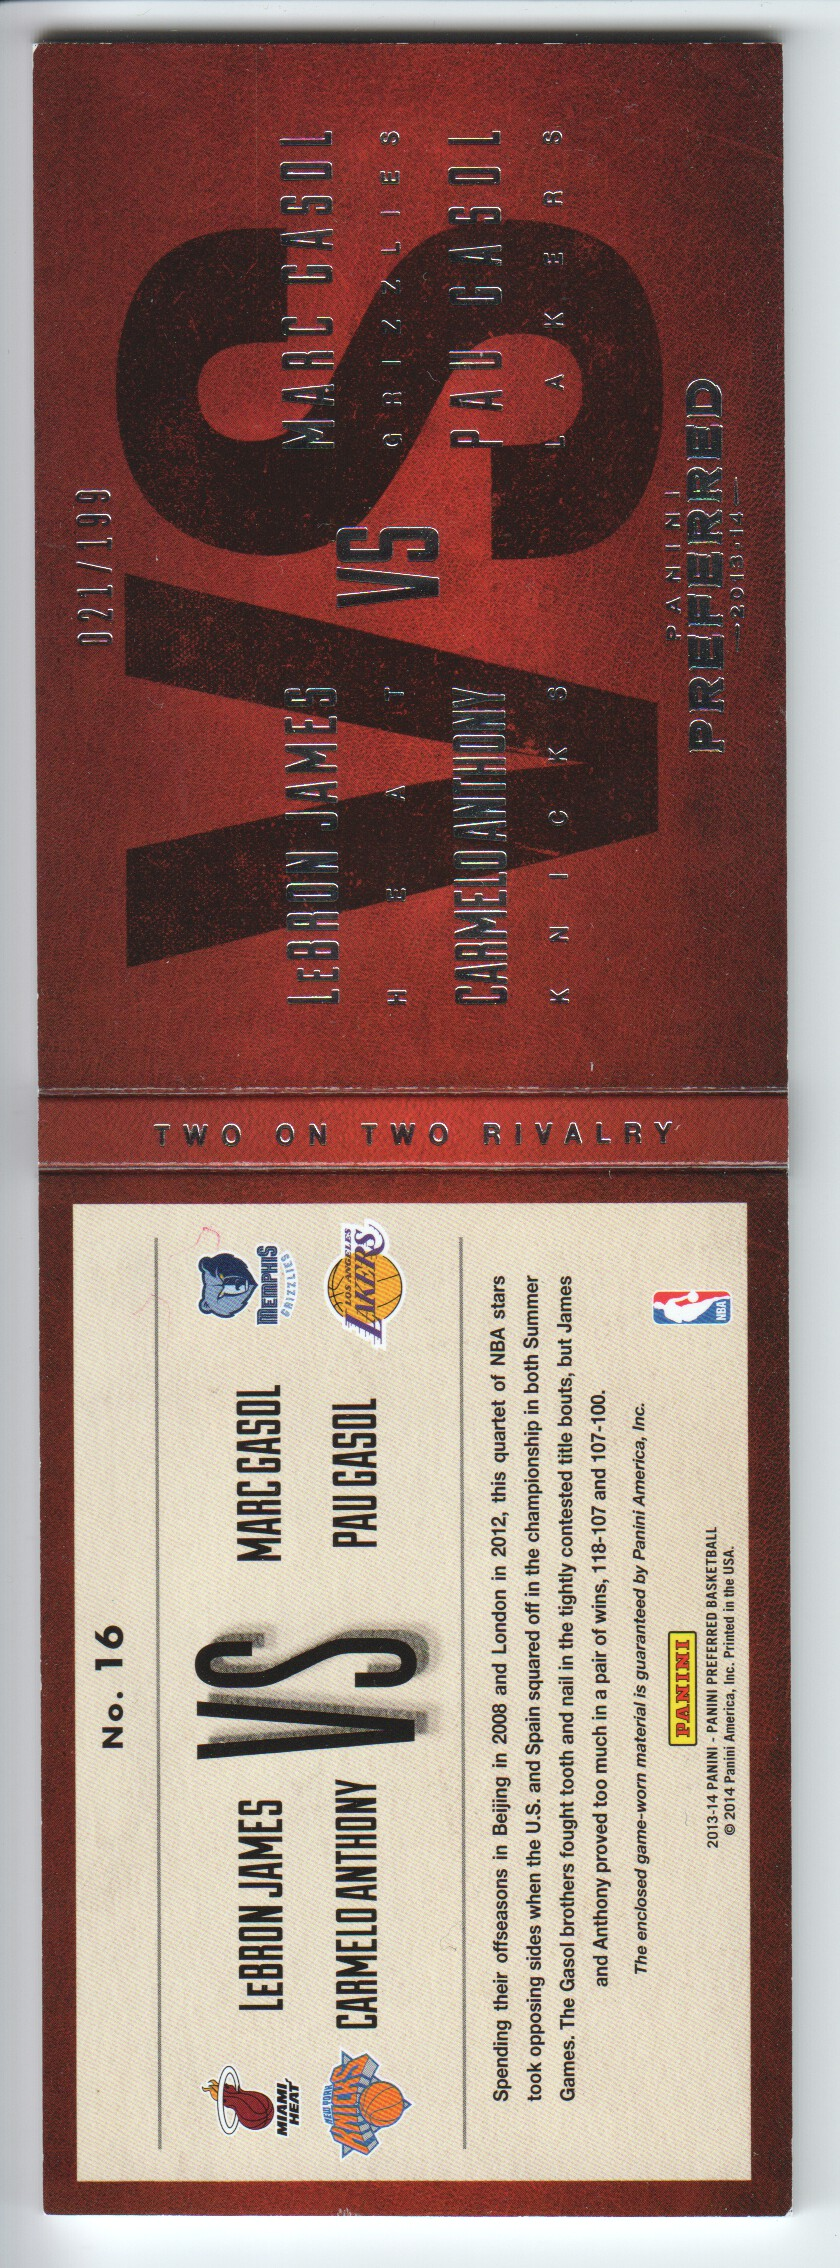 2013-14 Panini Preferred Two on Two Rivalry Memorabilia #16 Carmelo Anthony/LeBron James/Pau Gasol/Marc Gasol/199